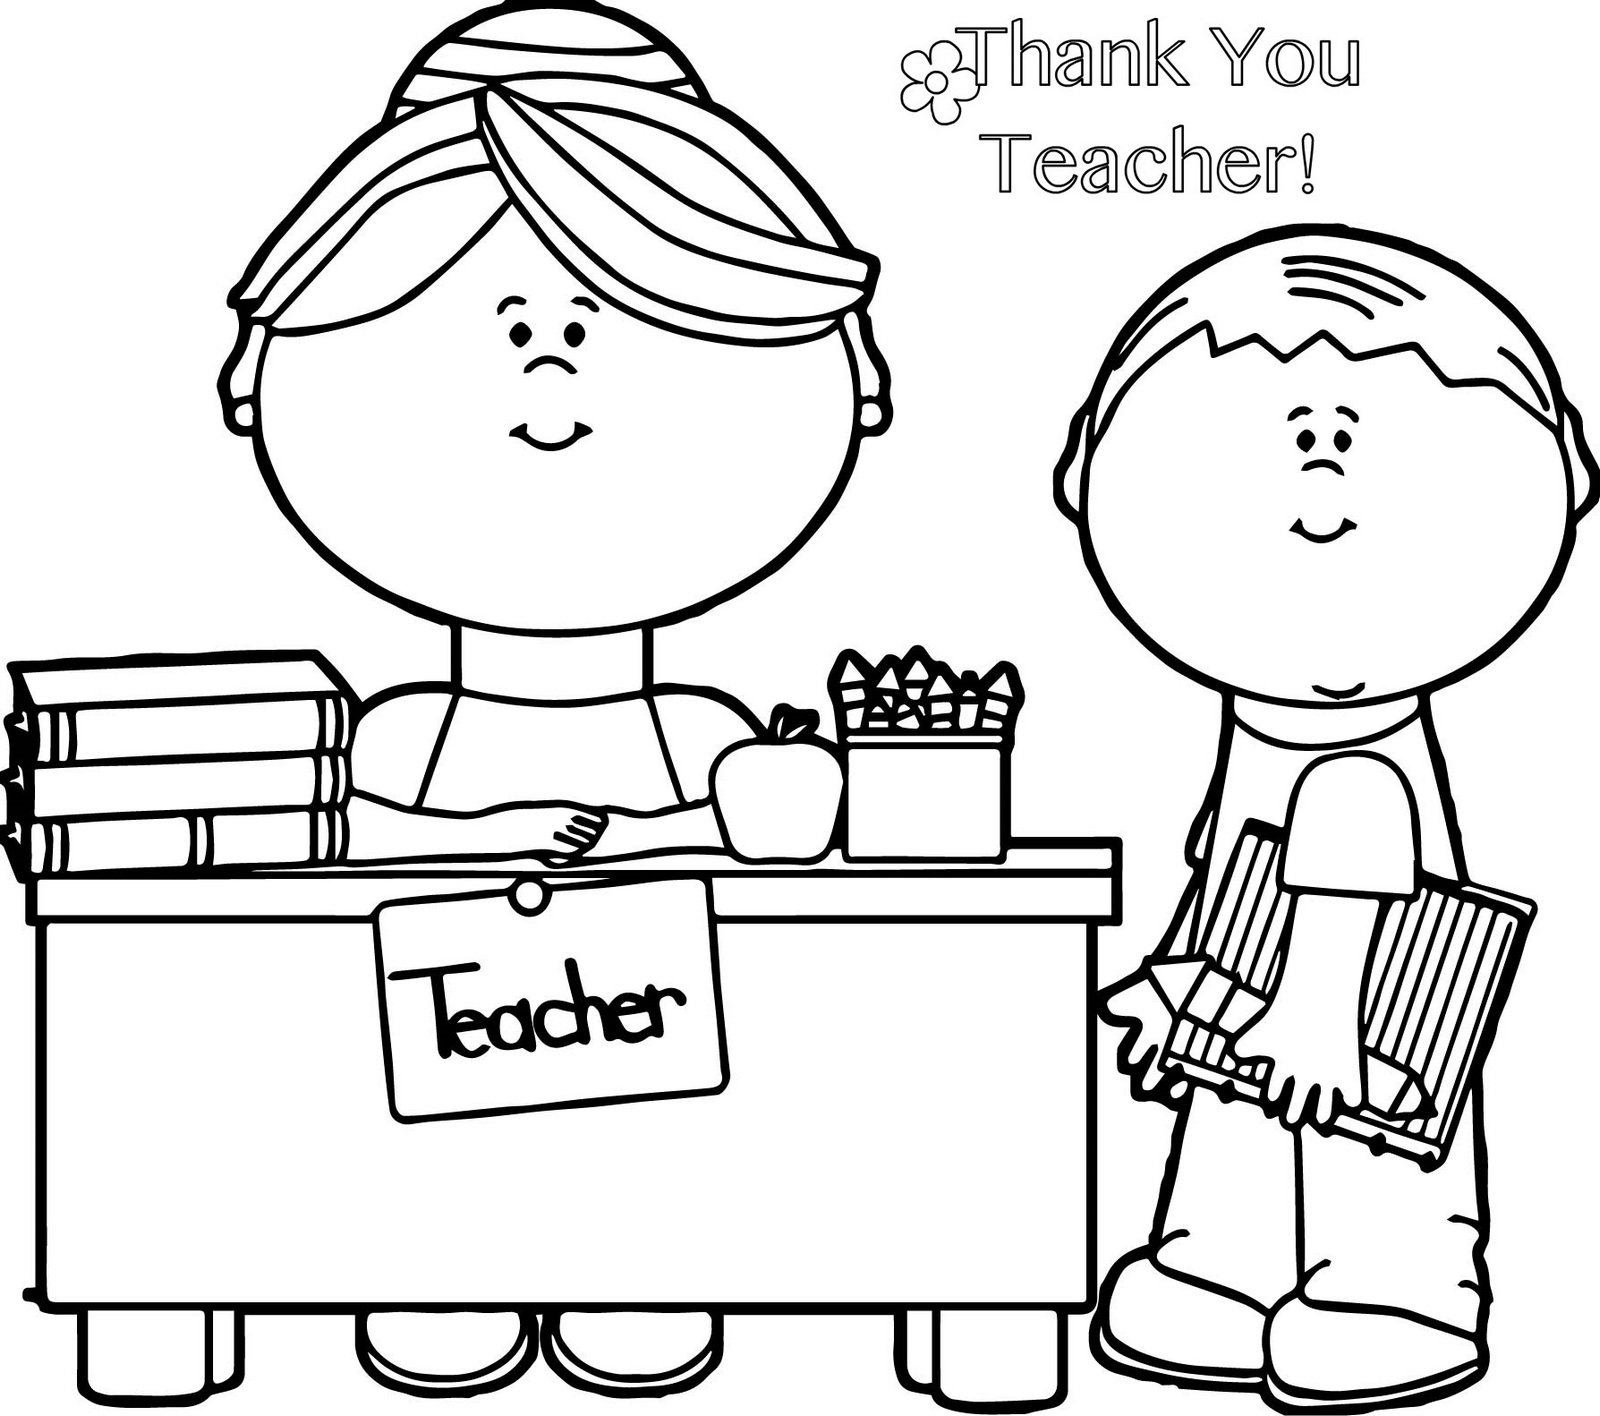 1600x1416 Gift Card Of Thank You Teacher Coloring Pages Brilliant